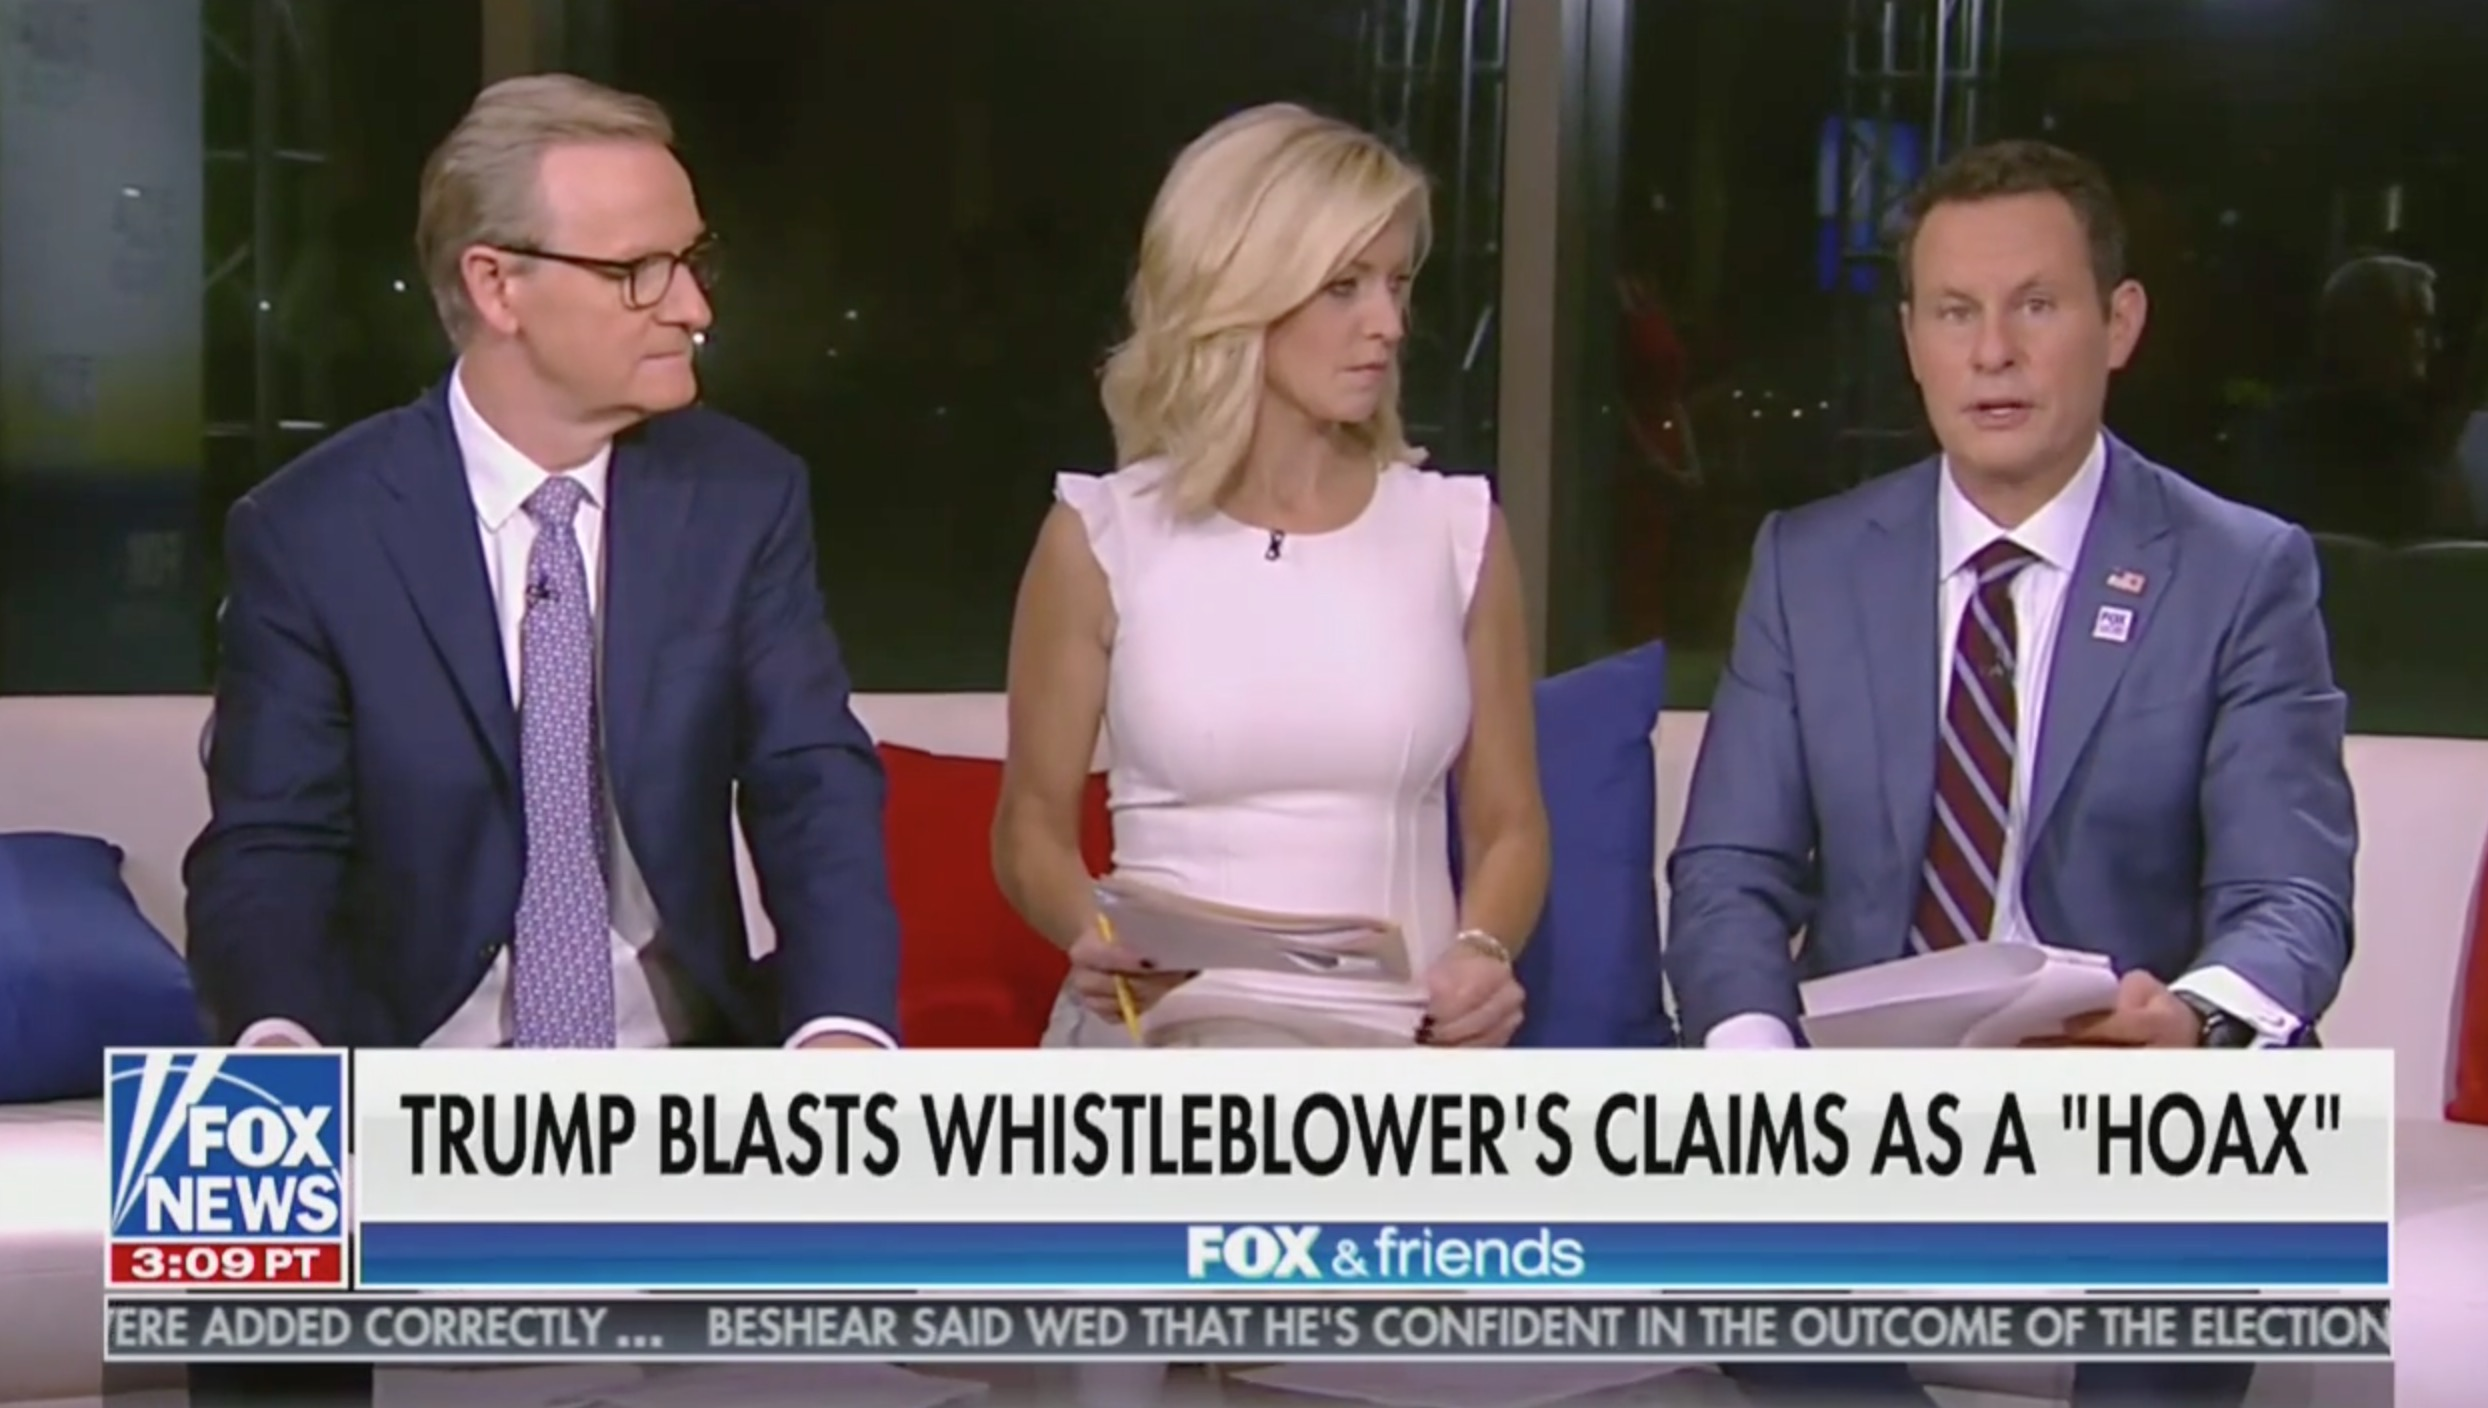 Brian Kilmeade Hits CNN: 'Have You Ever Seen a Positive Word About the President' From Them?